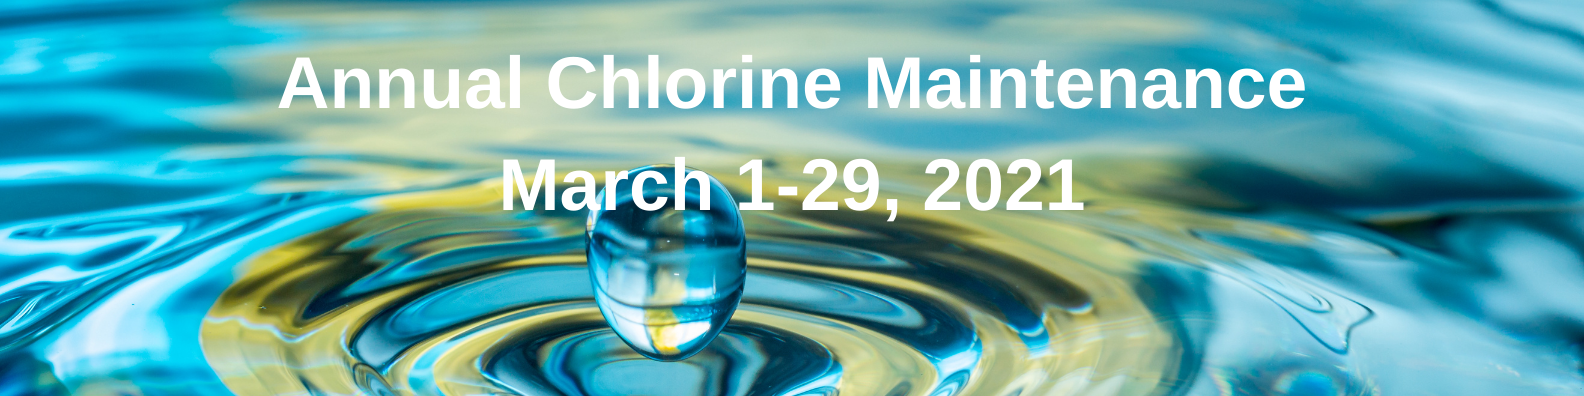 Annual Chlorine Maintenance March 1-29, 2021